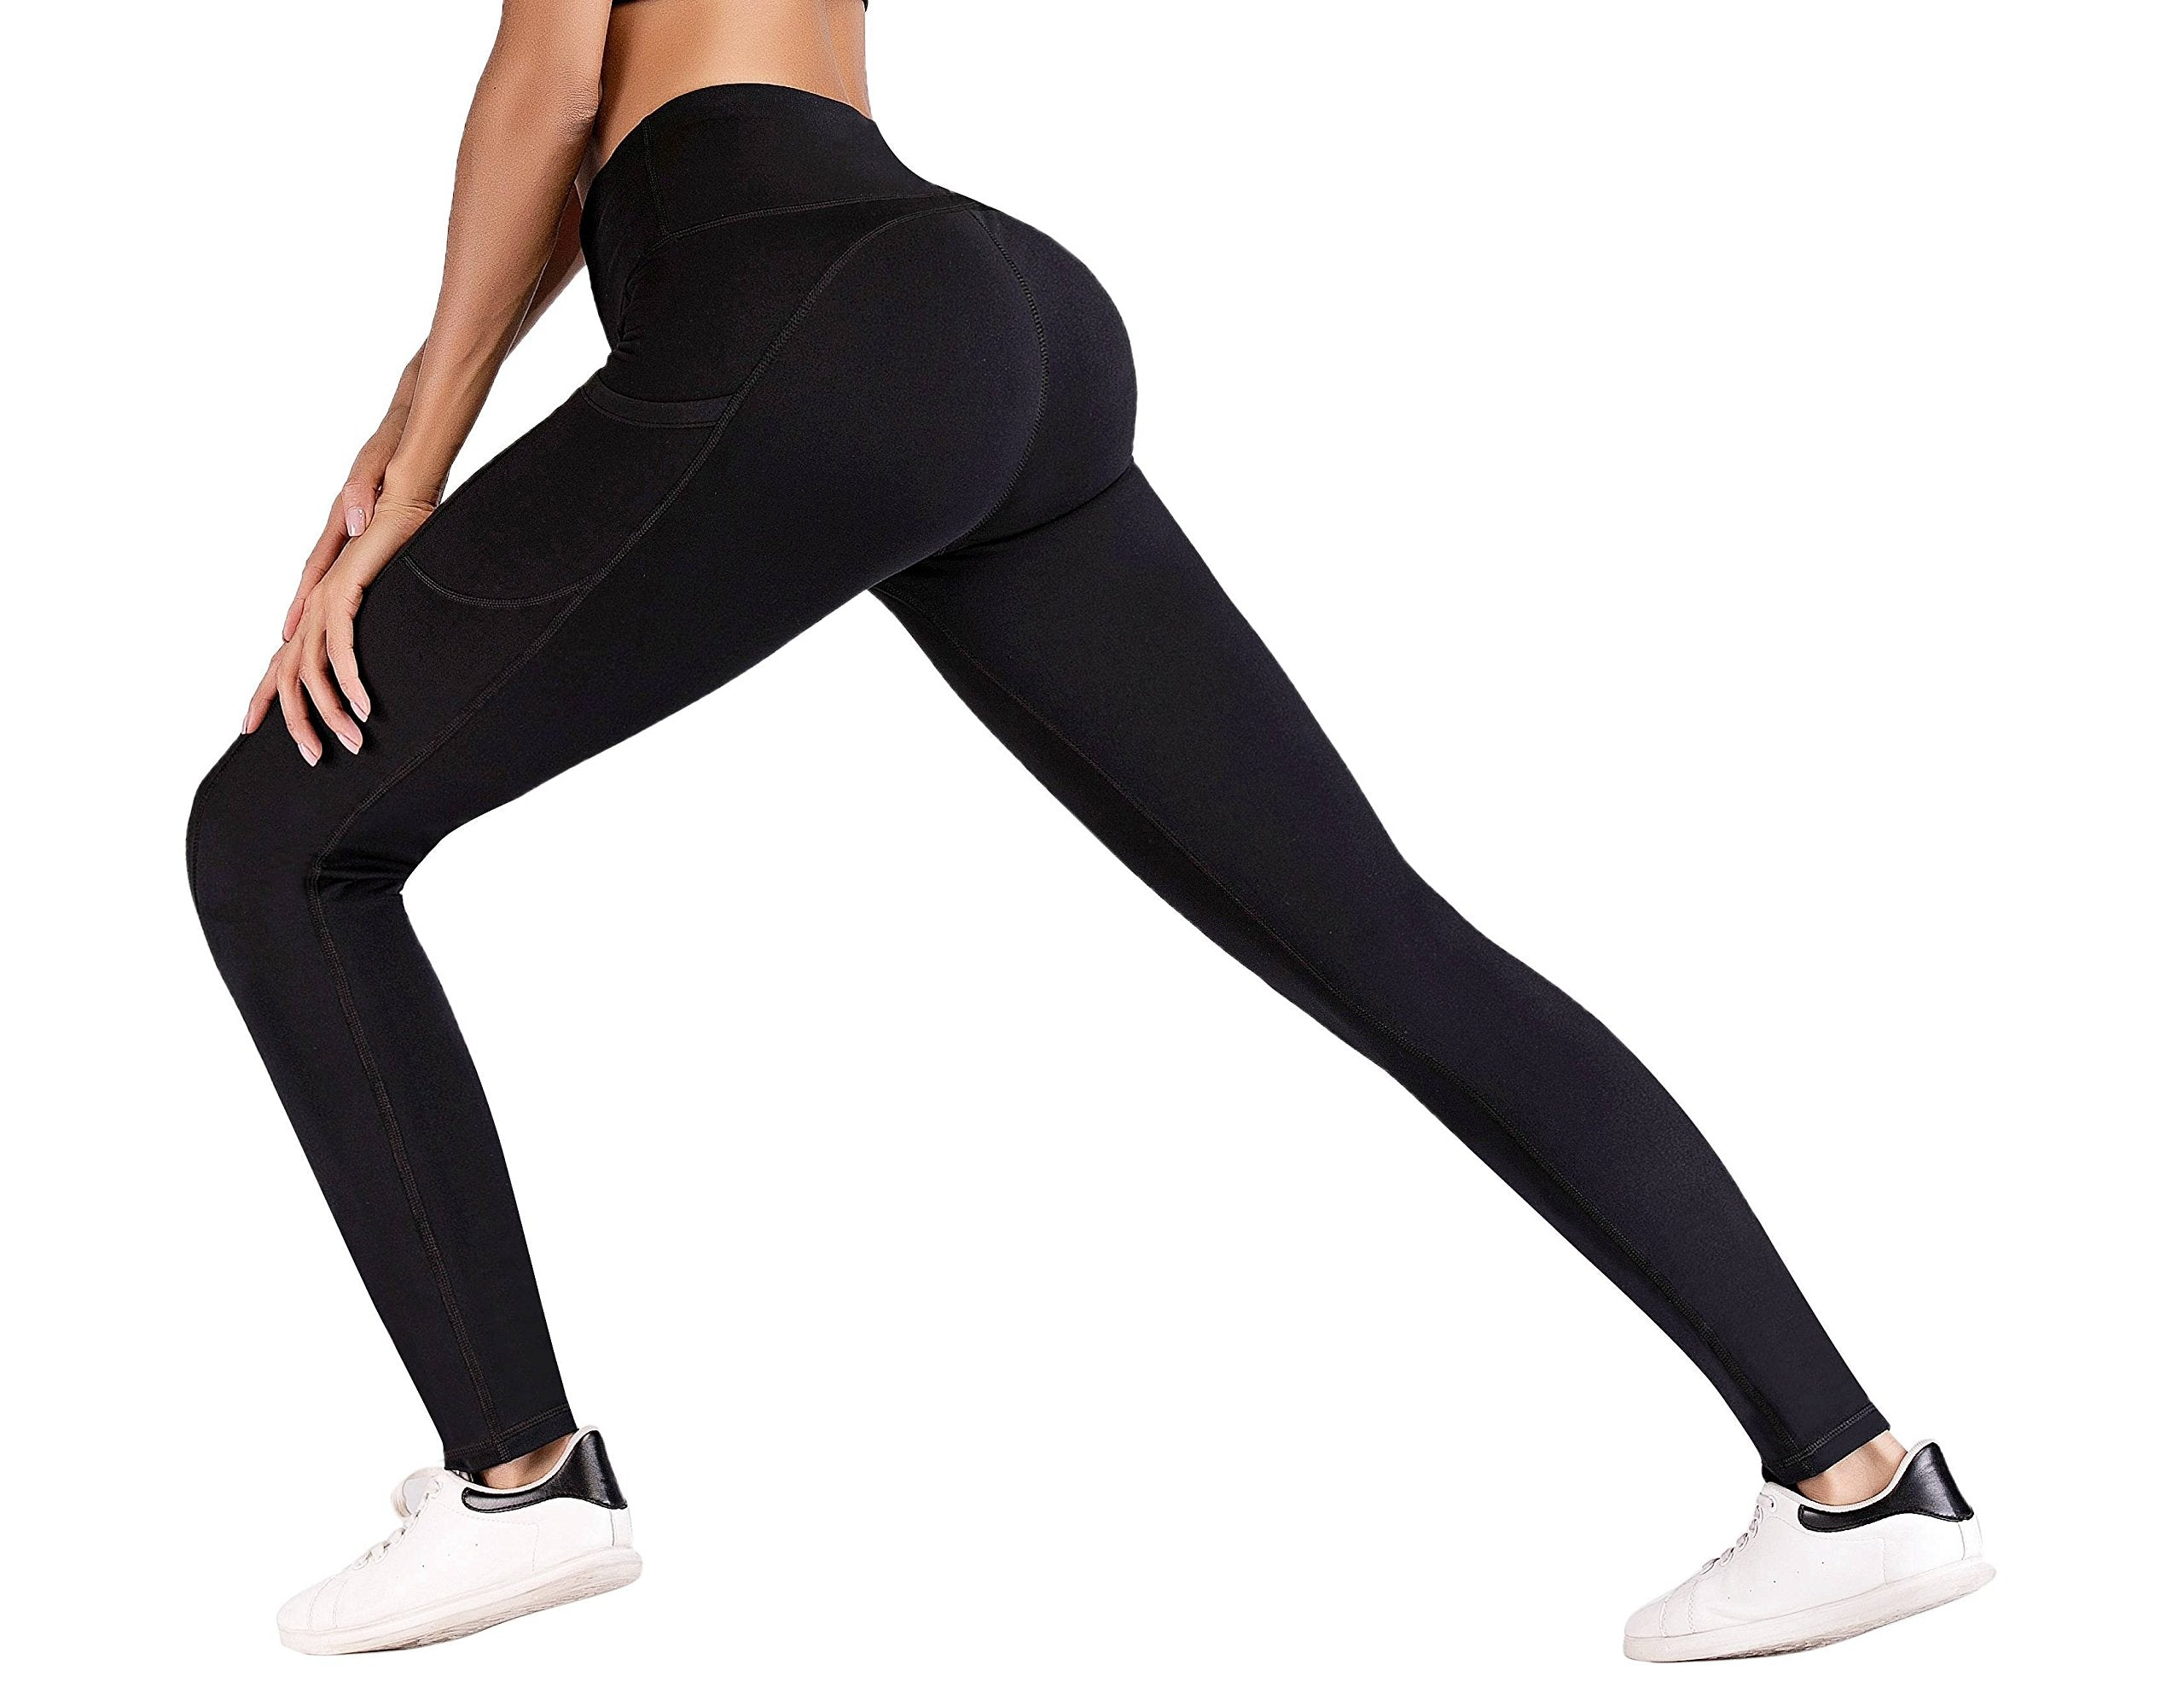 IUGA High Waist Yoga Pants with Pockets, Tummy Control, Workout Pants for Women 4 Way Stretch Yoga Leggings with Pockets - Ctfitnesswear